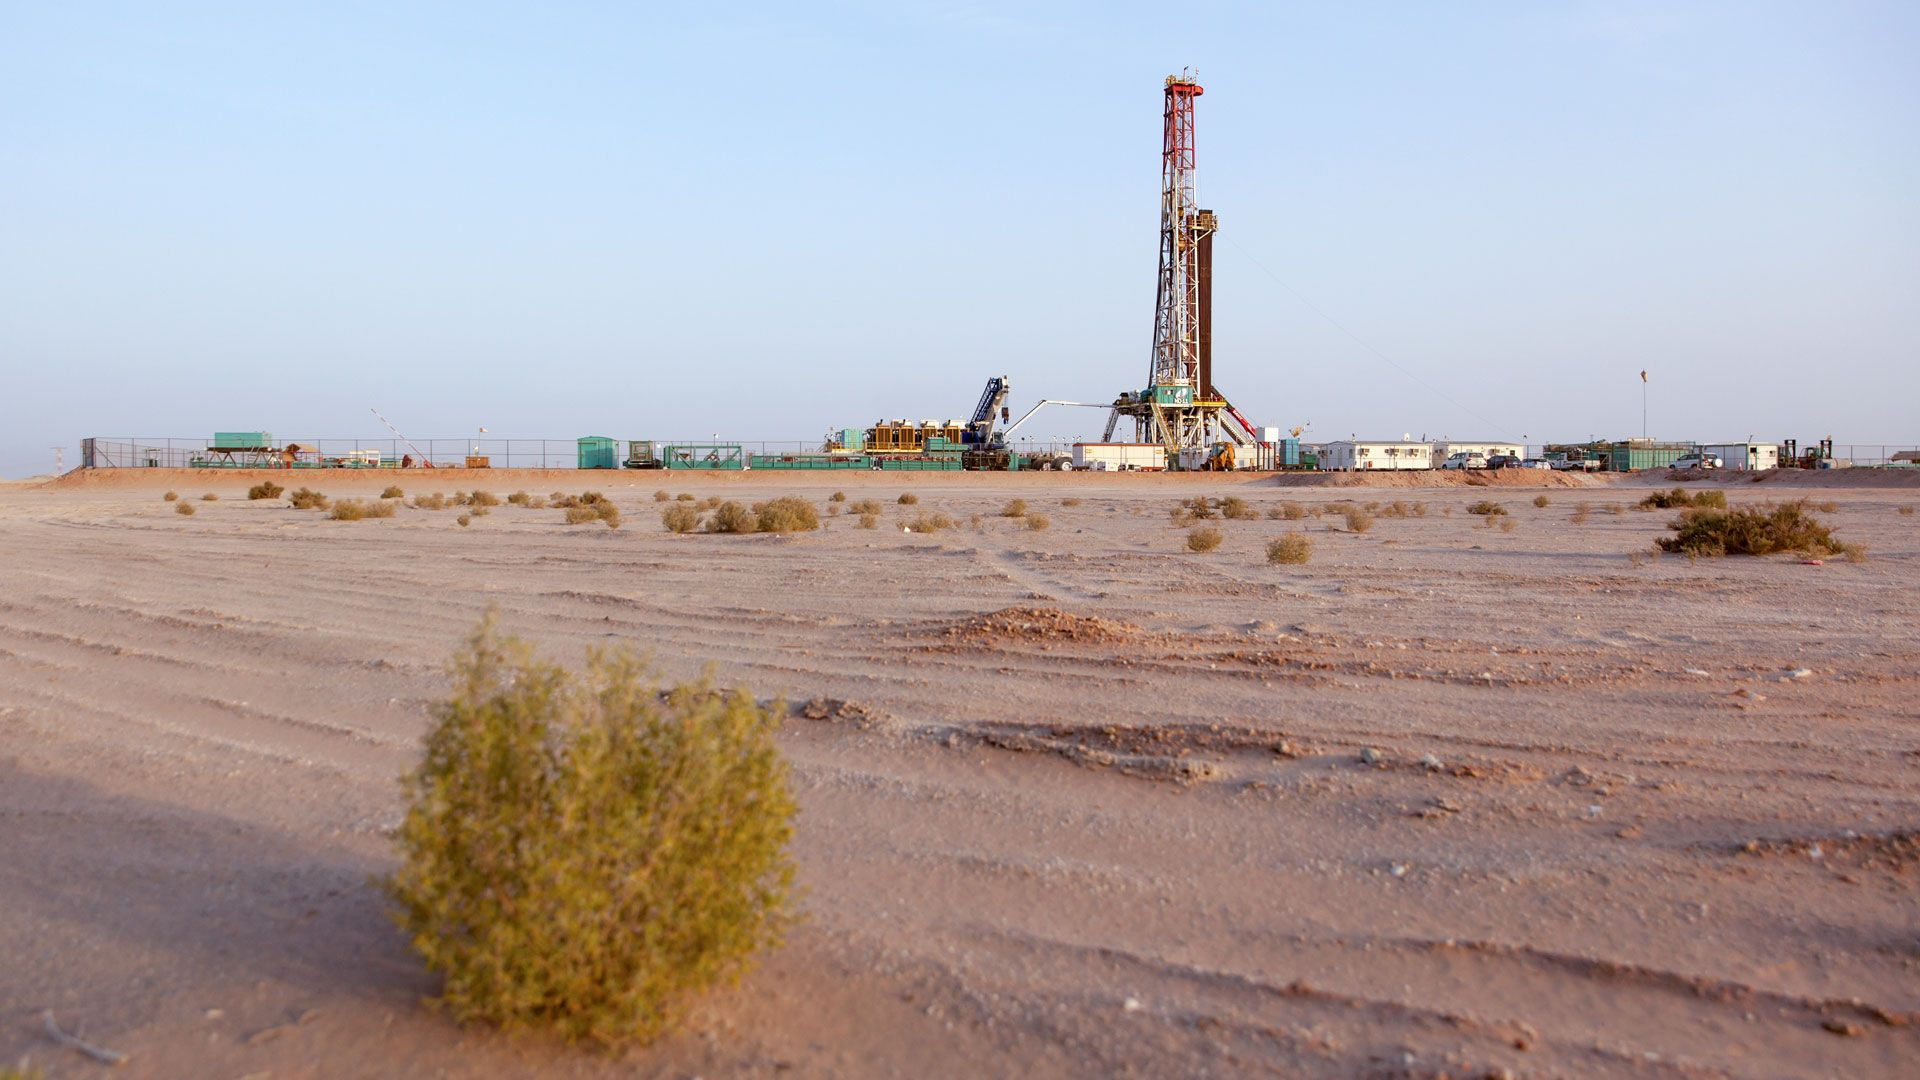 Wintershall Dea Production Site UAE